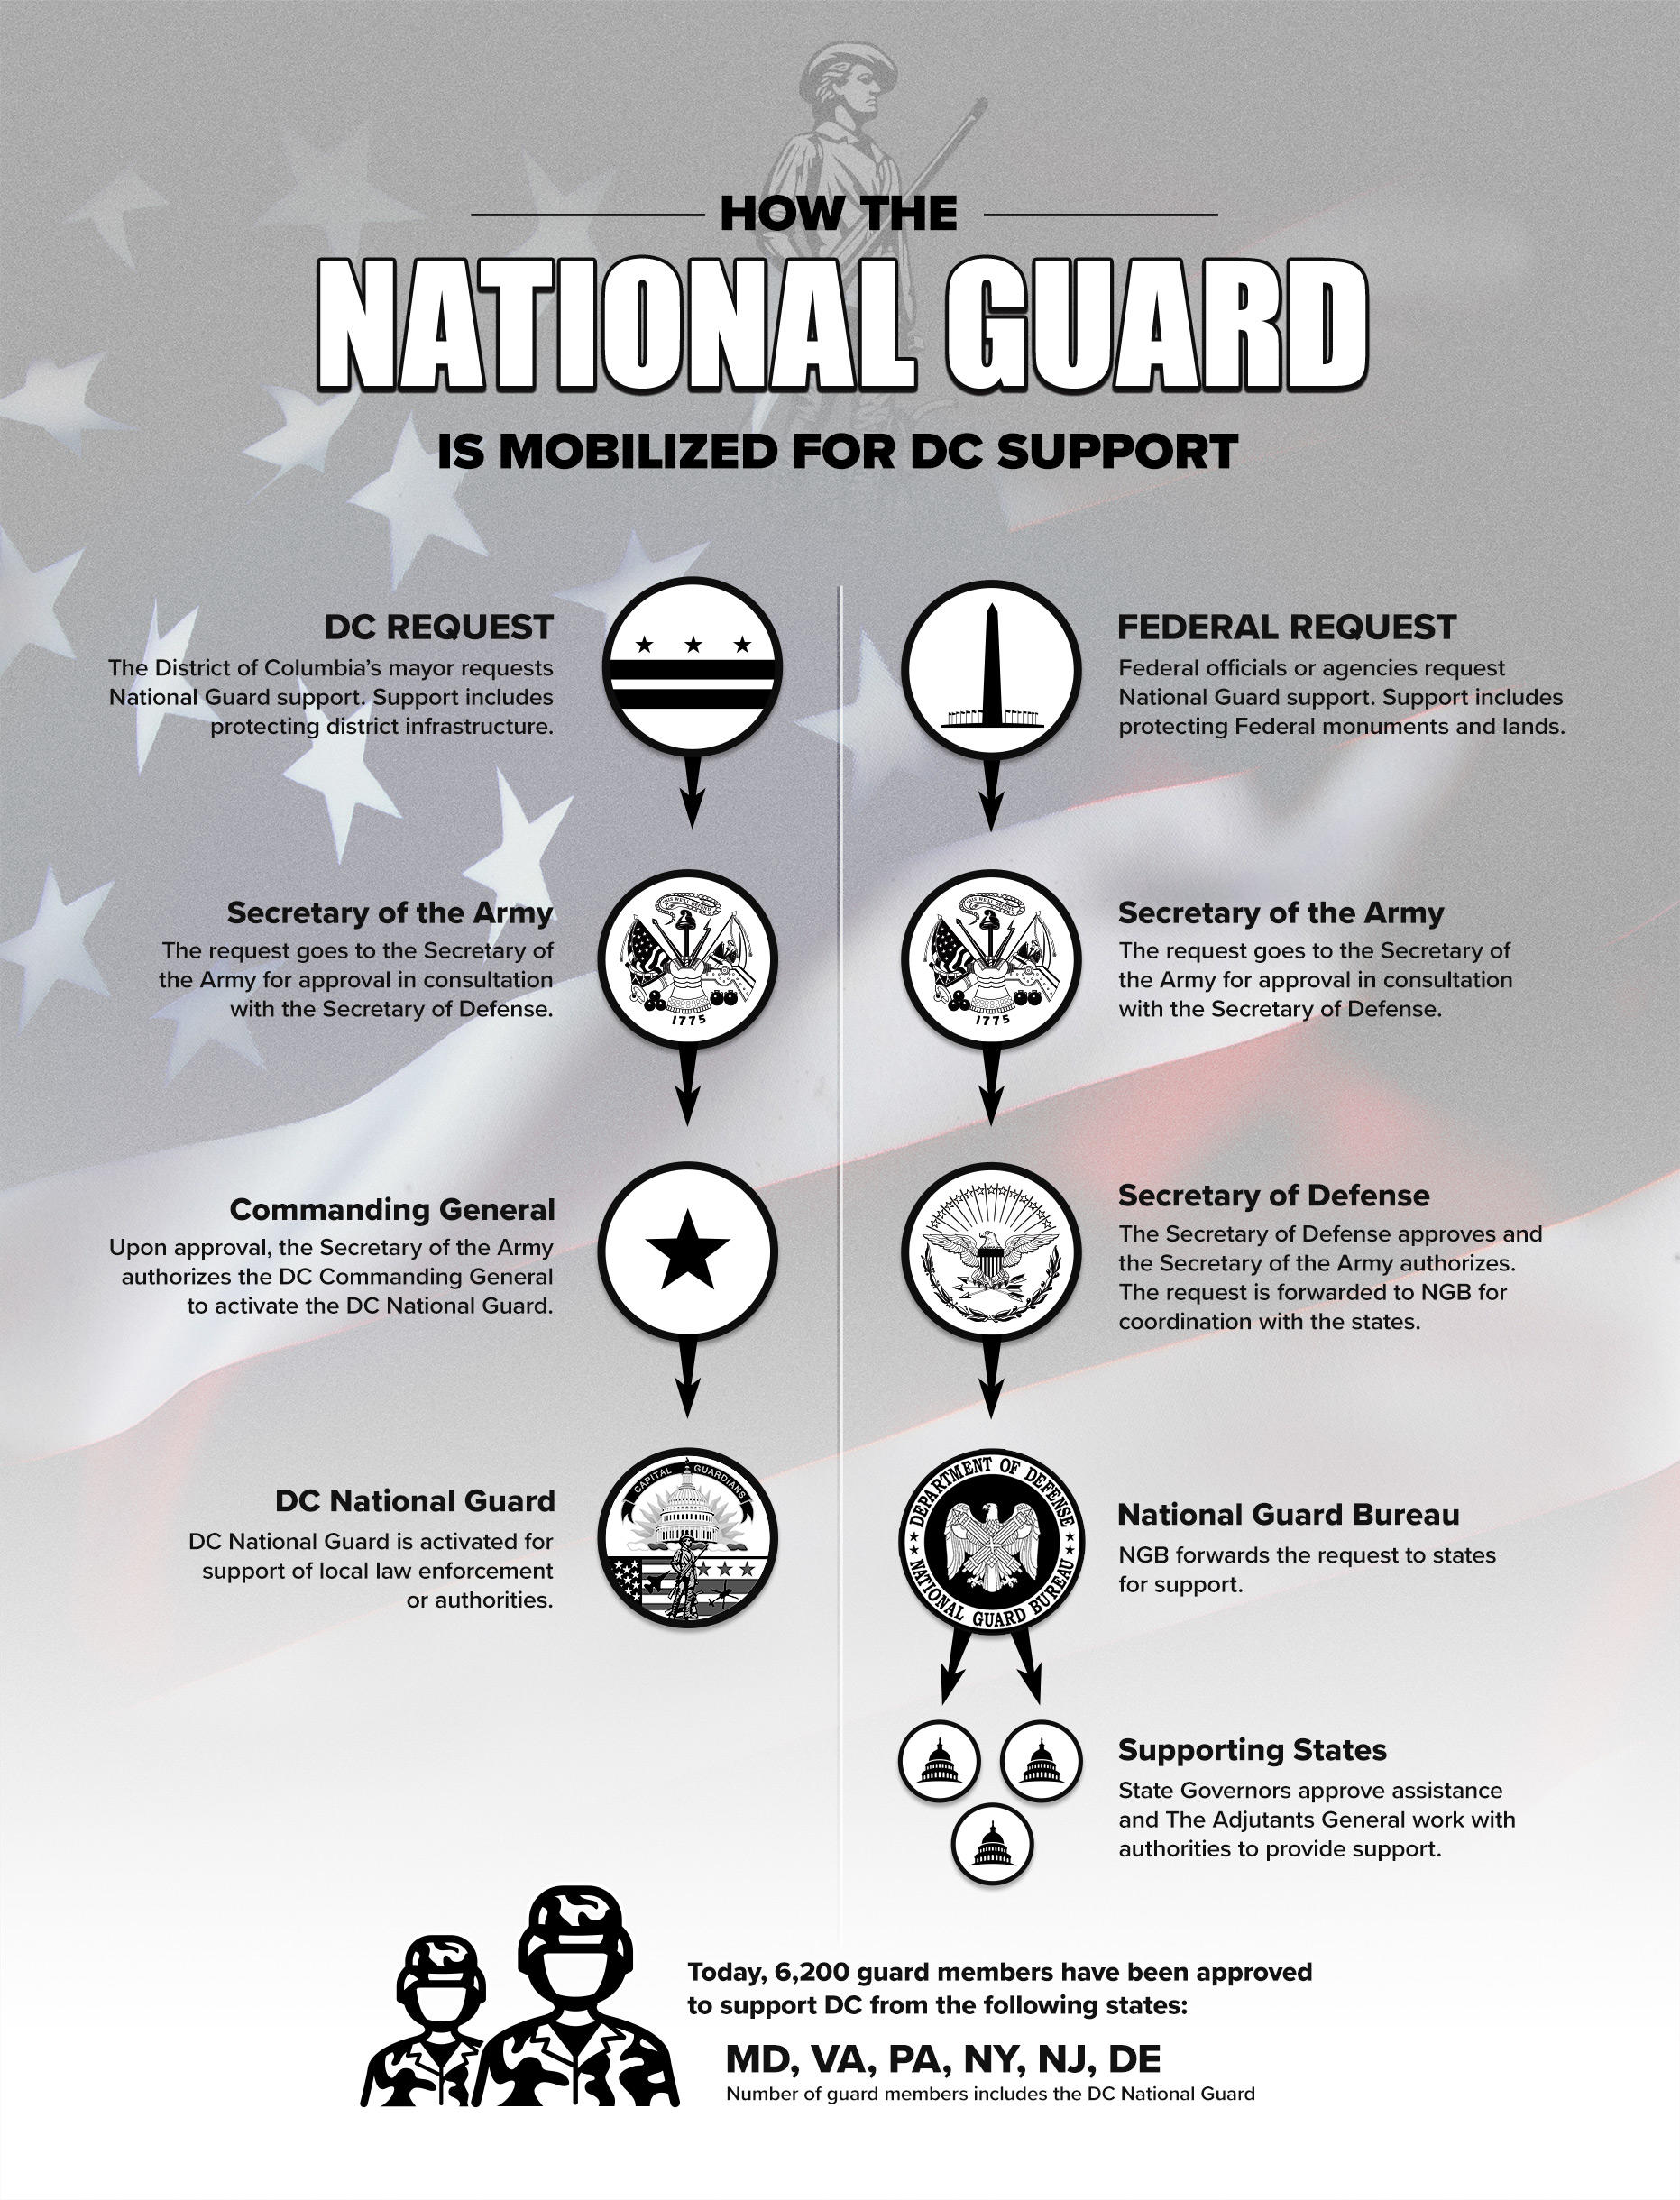 https://leadstories.com/Guard%20Support%20Infographic10Jan20%20%281%29.jpg